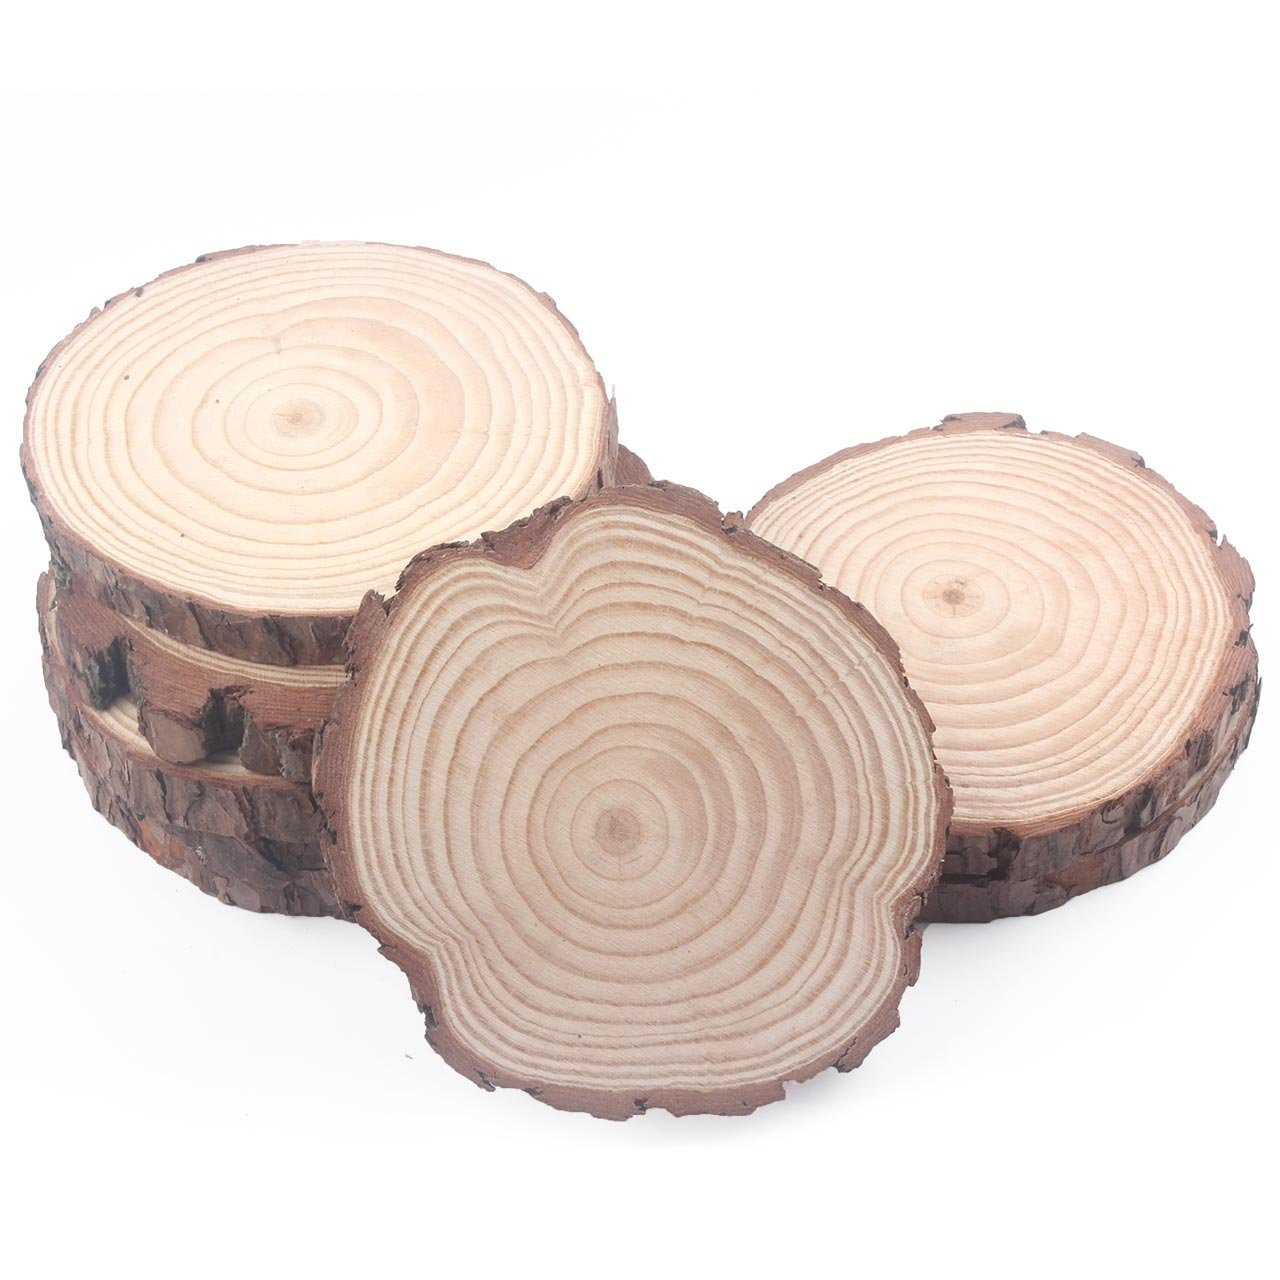 Wood Slabs Untreated Pack of 8, 6-7 inches Coasters Centerpiece Bulk Cupcake Stand Decorations Crafts Thick